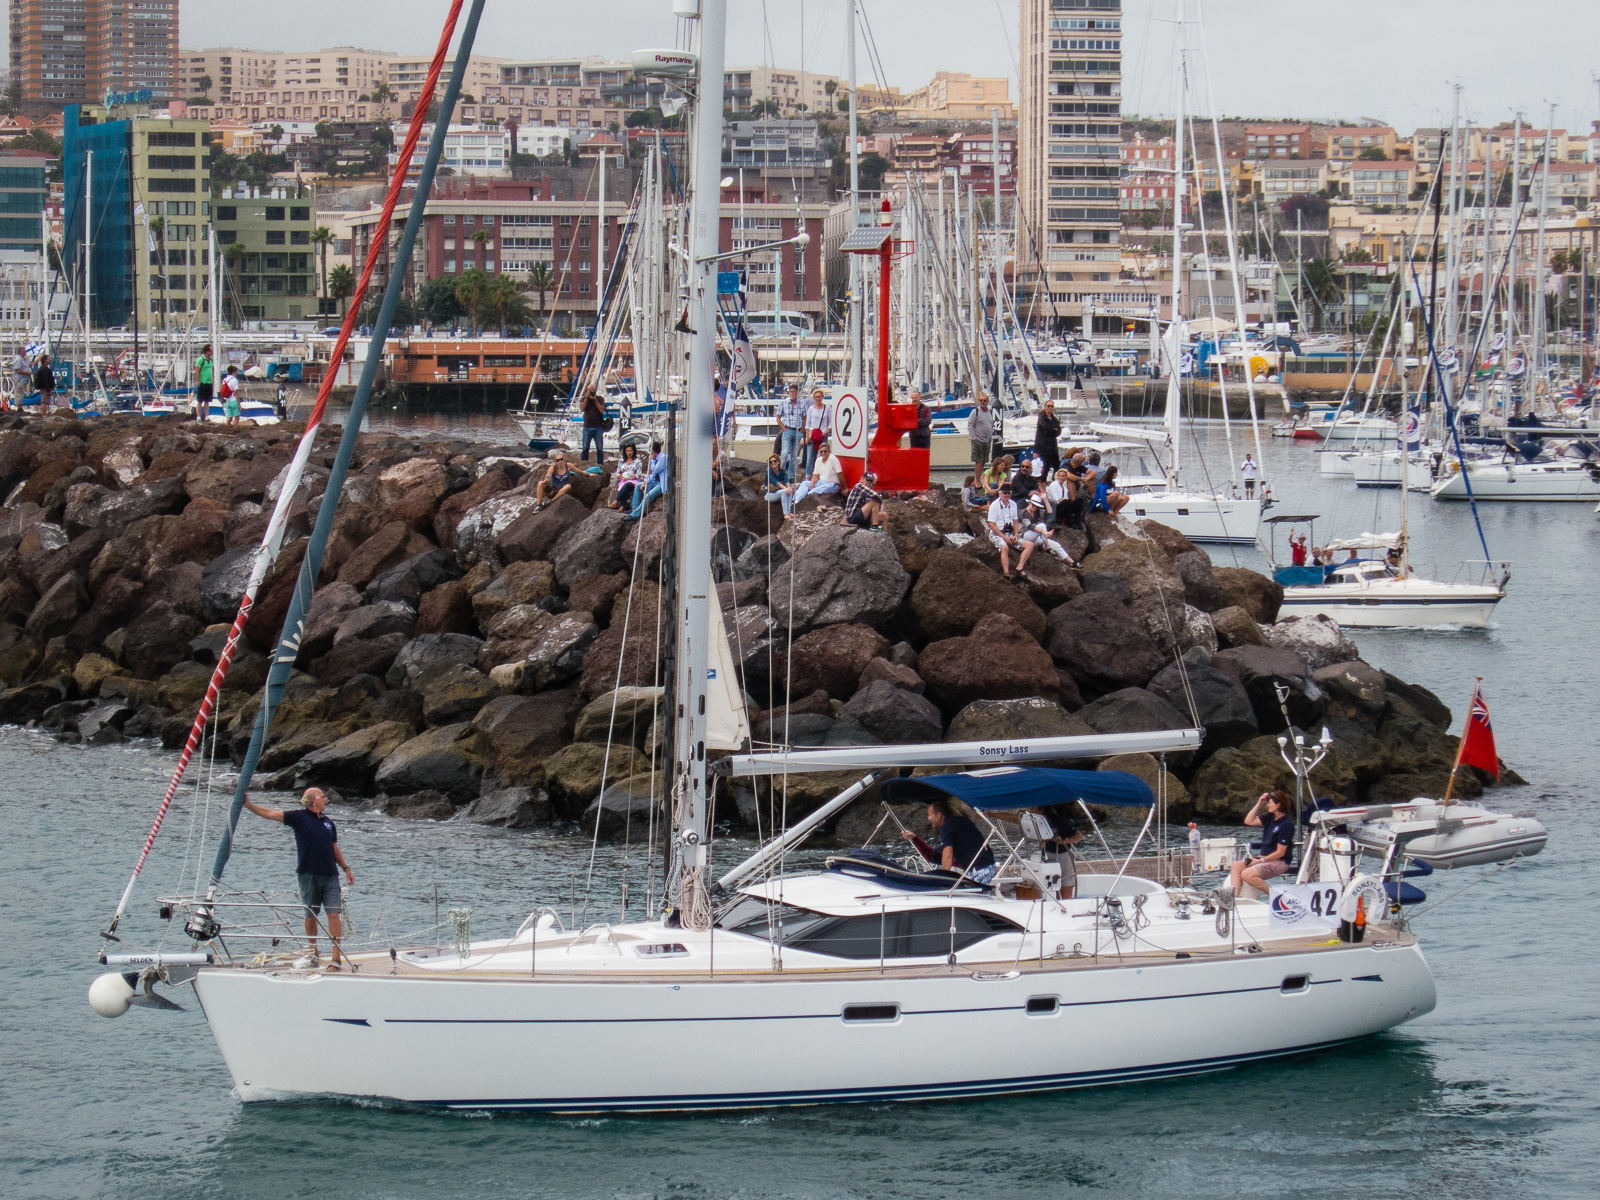 ARC - Atlantic Rally for Cruisers, Las Palmas